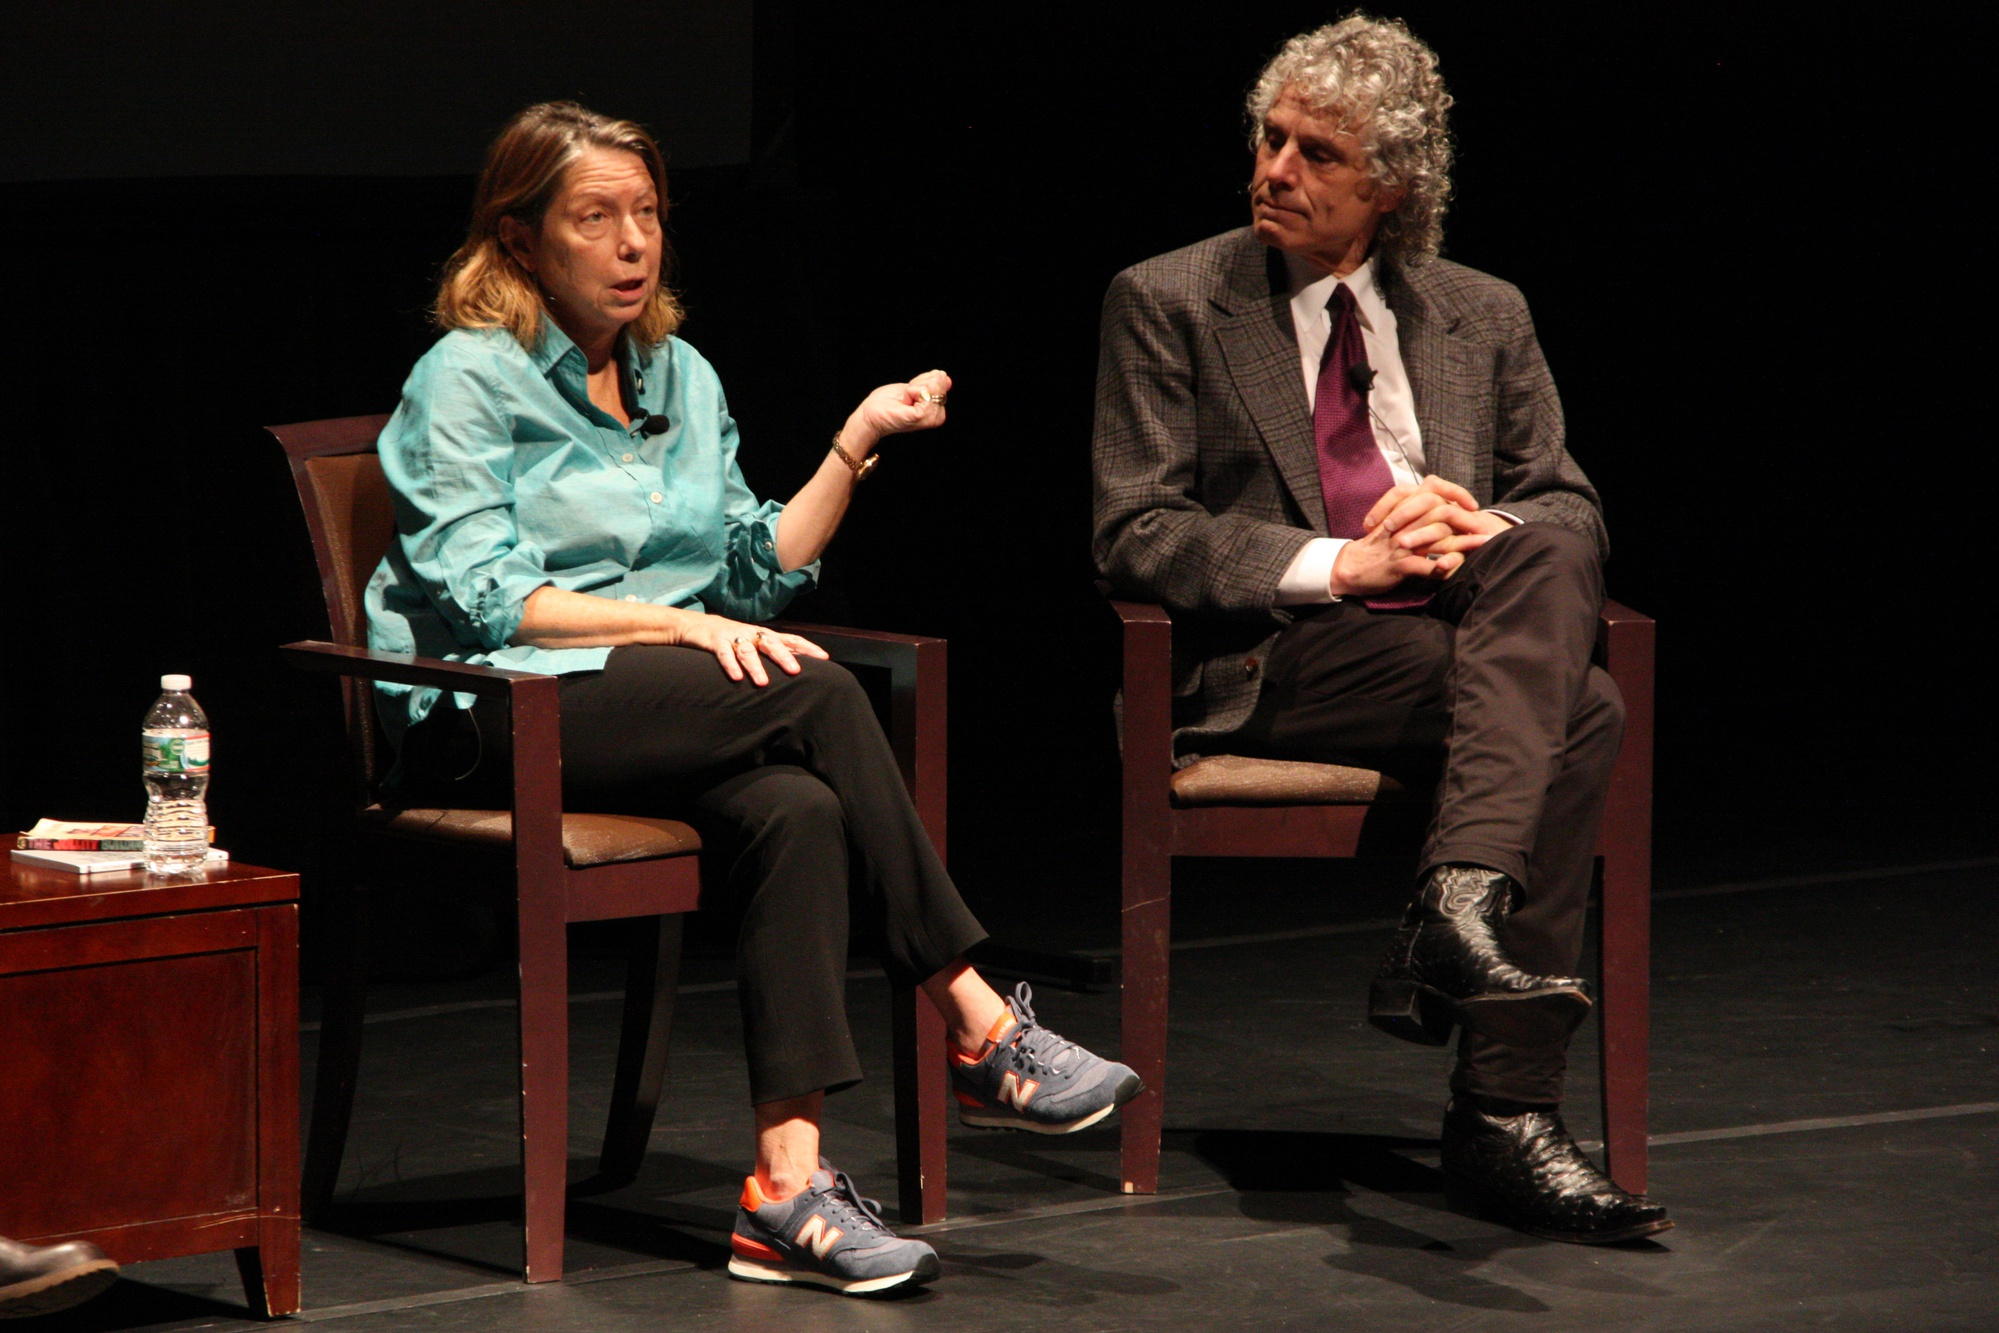 Jill E. Abramson '76, former executive editor of The New York Times, and Steven Pinker, Johnstone Family psychology professor, discuss different styles of writing at Farkas Hall on Tuesday night.